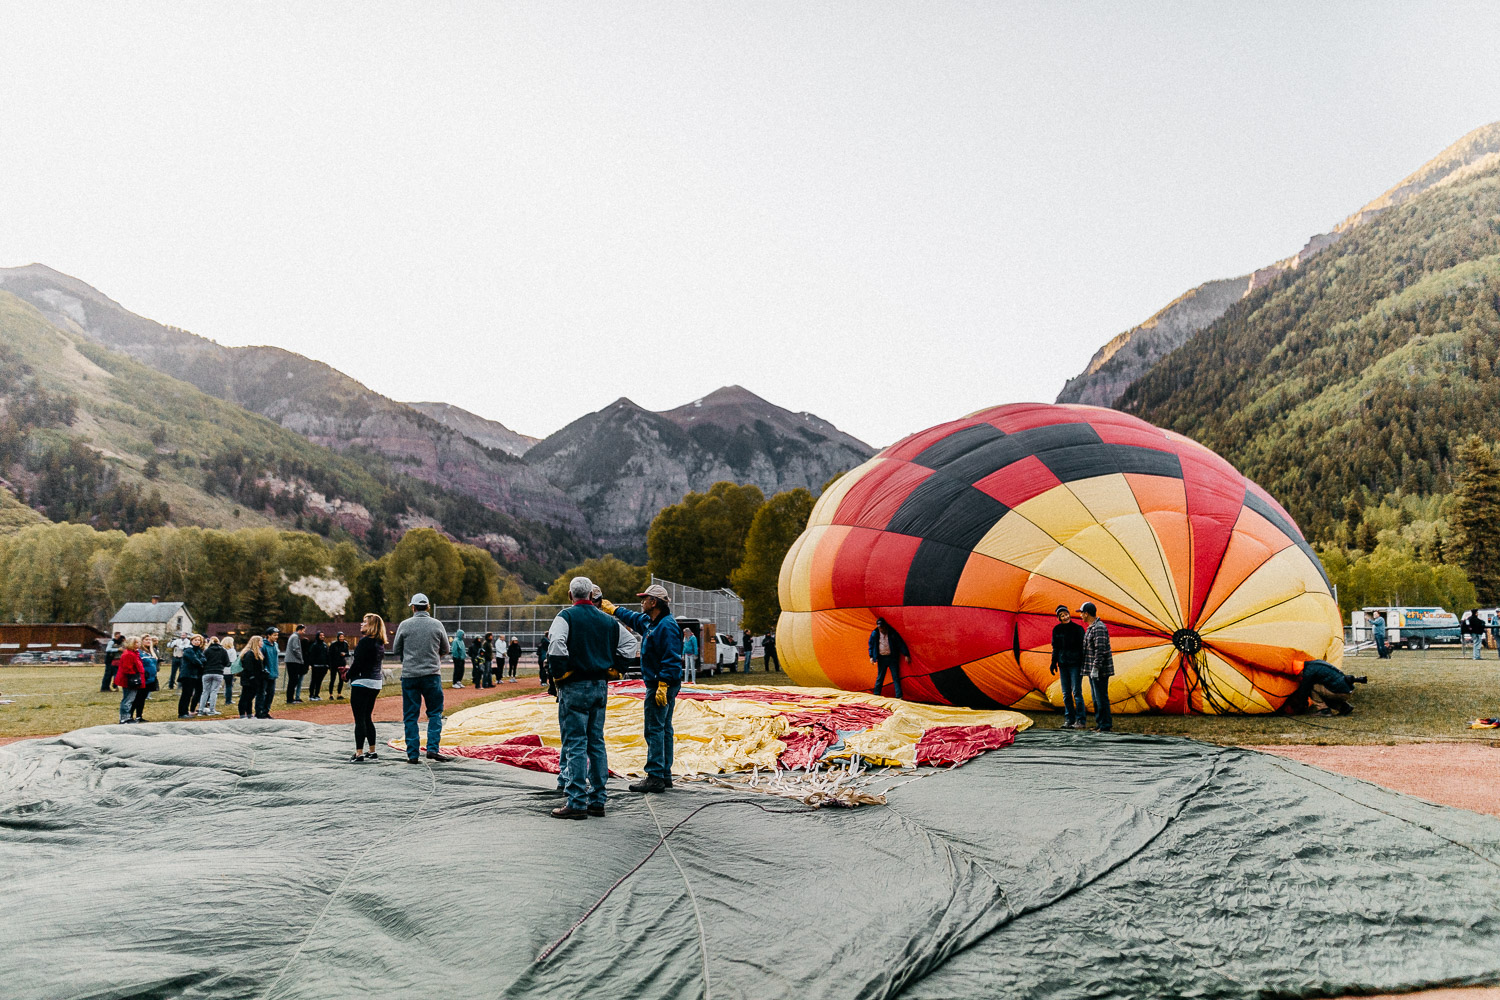 The Ultimate 10 Day Road Trip Through Colorado | Telluride Hot Air Balloon Festival